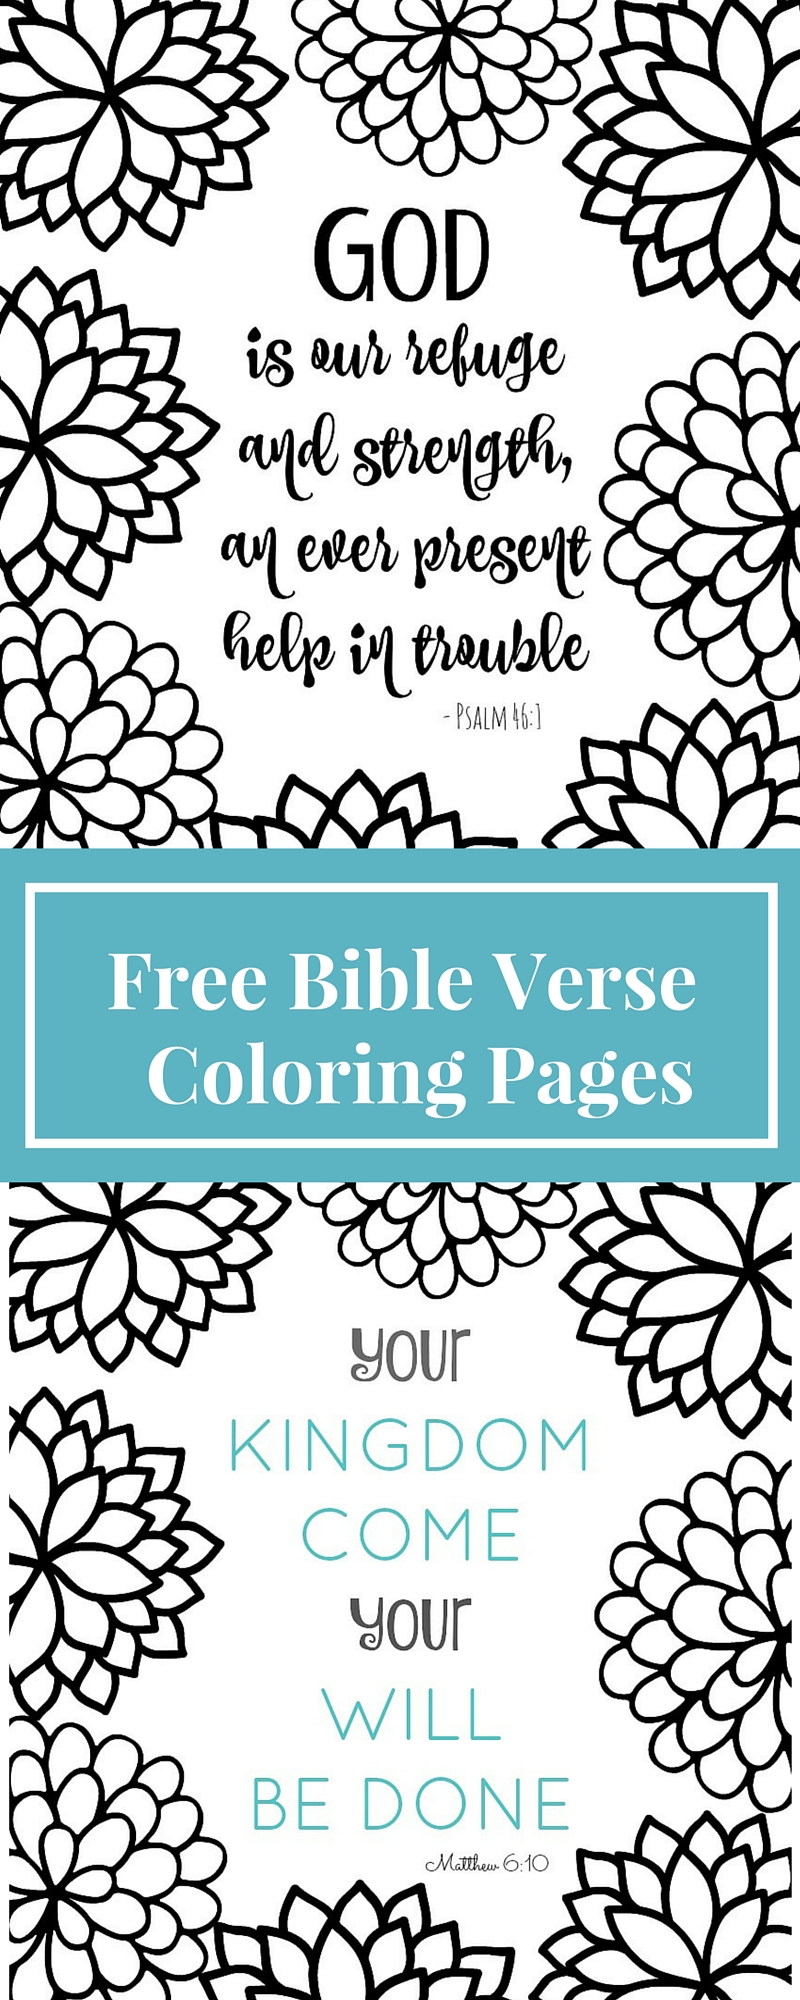 Uncategorized Free Bible Coloring Pages For Kids free printable bible verse coloring pages with bursting blossoms pages